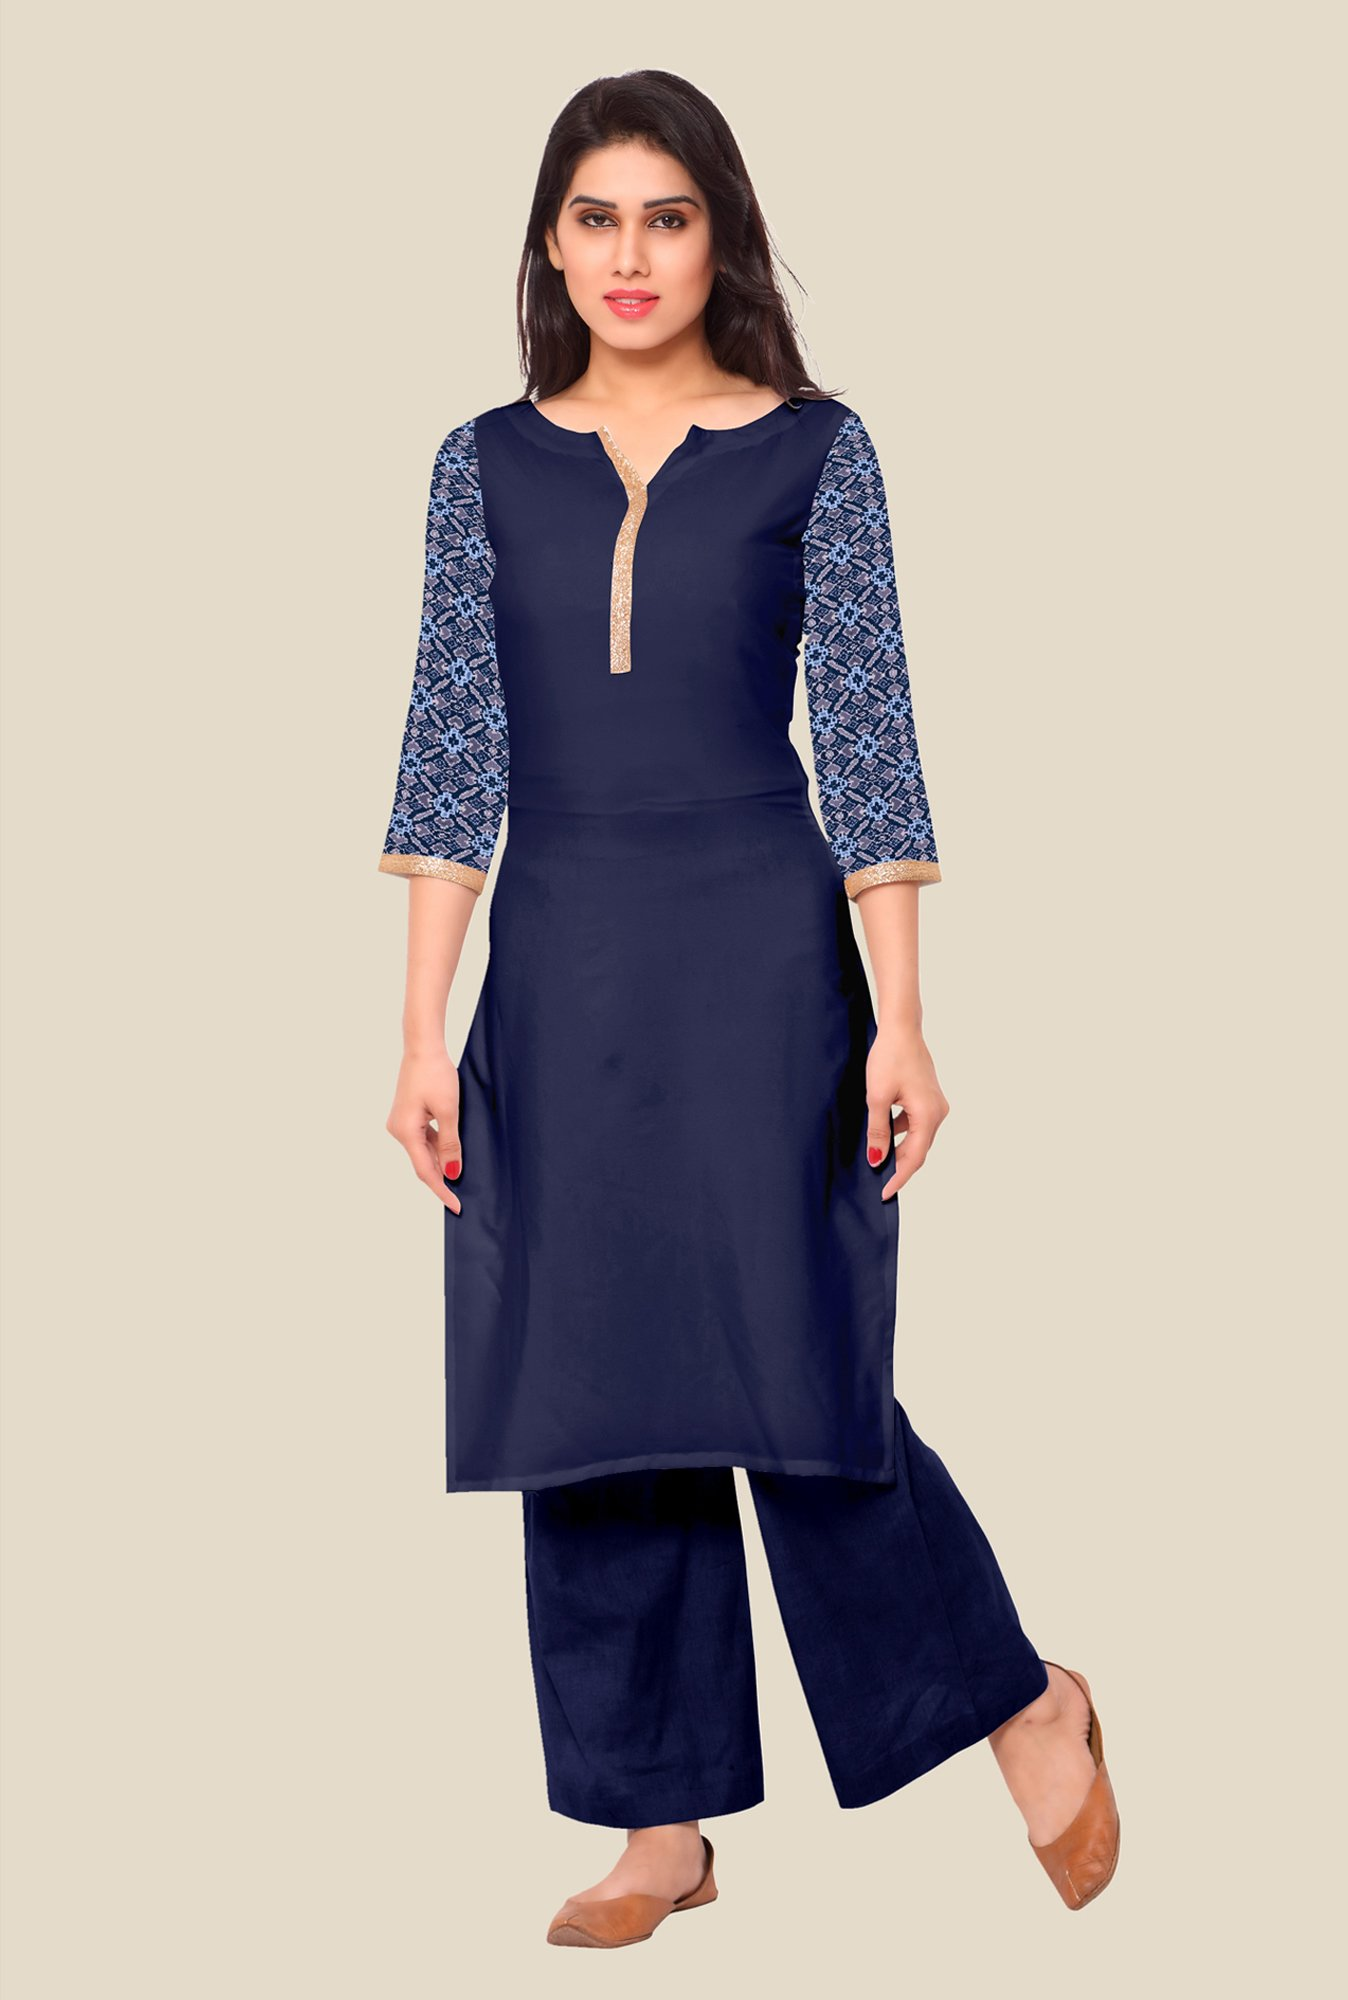 Ahalyaa Dark Blue Solid Kurta